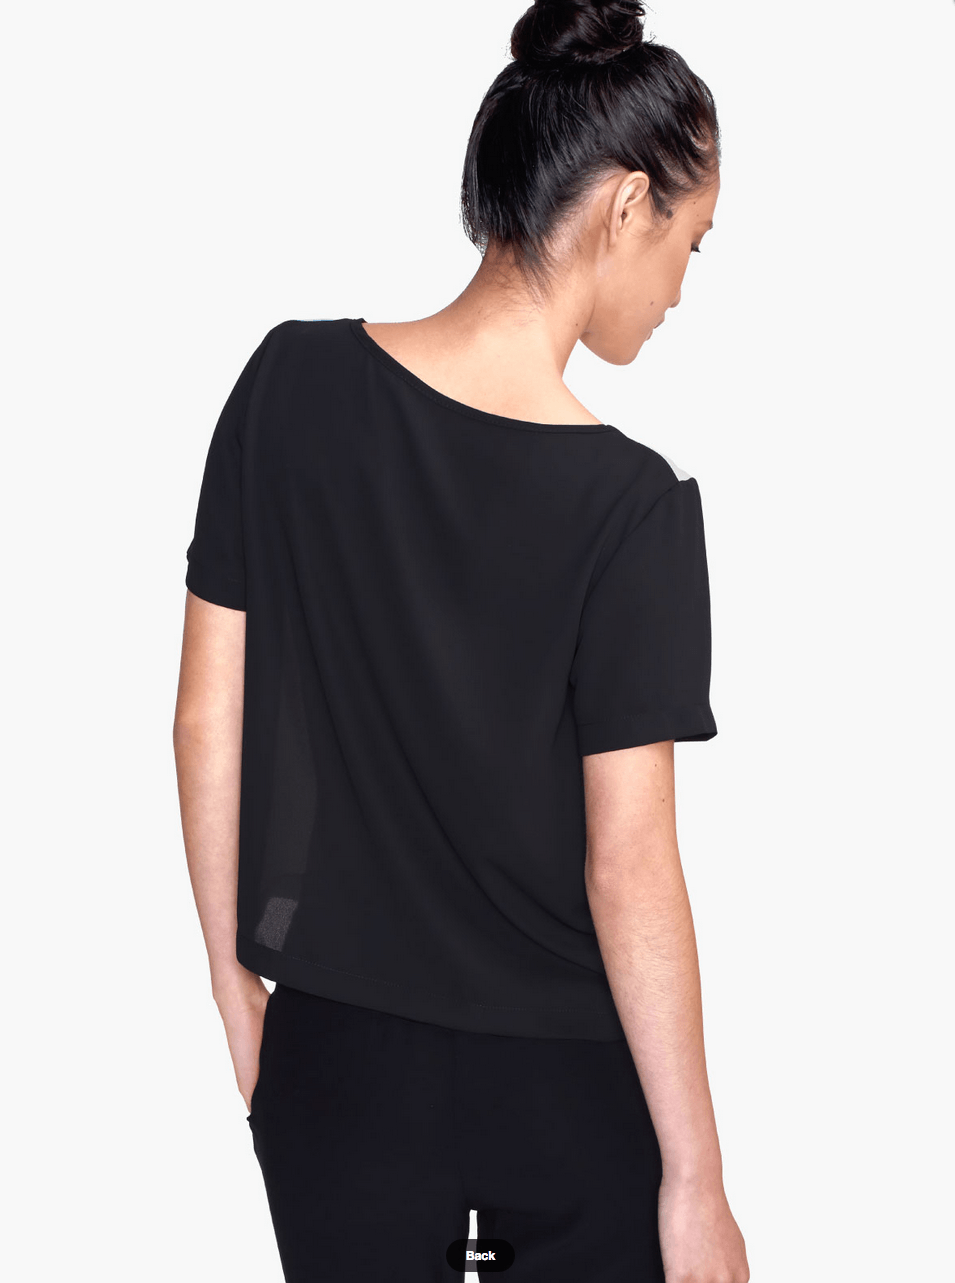 Geometric Top - Chiffon Tops - Women Blouse - Modern Clothing-TheGretest